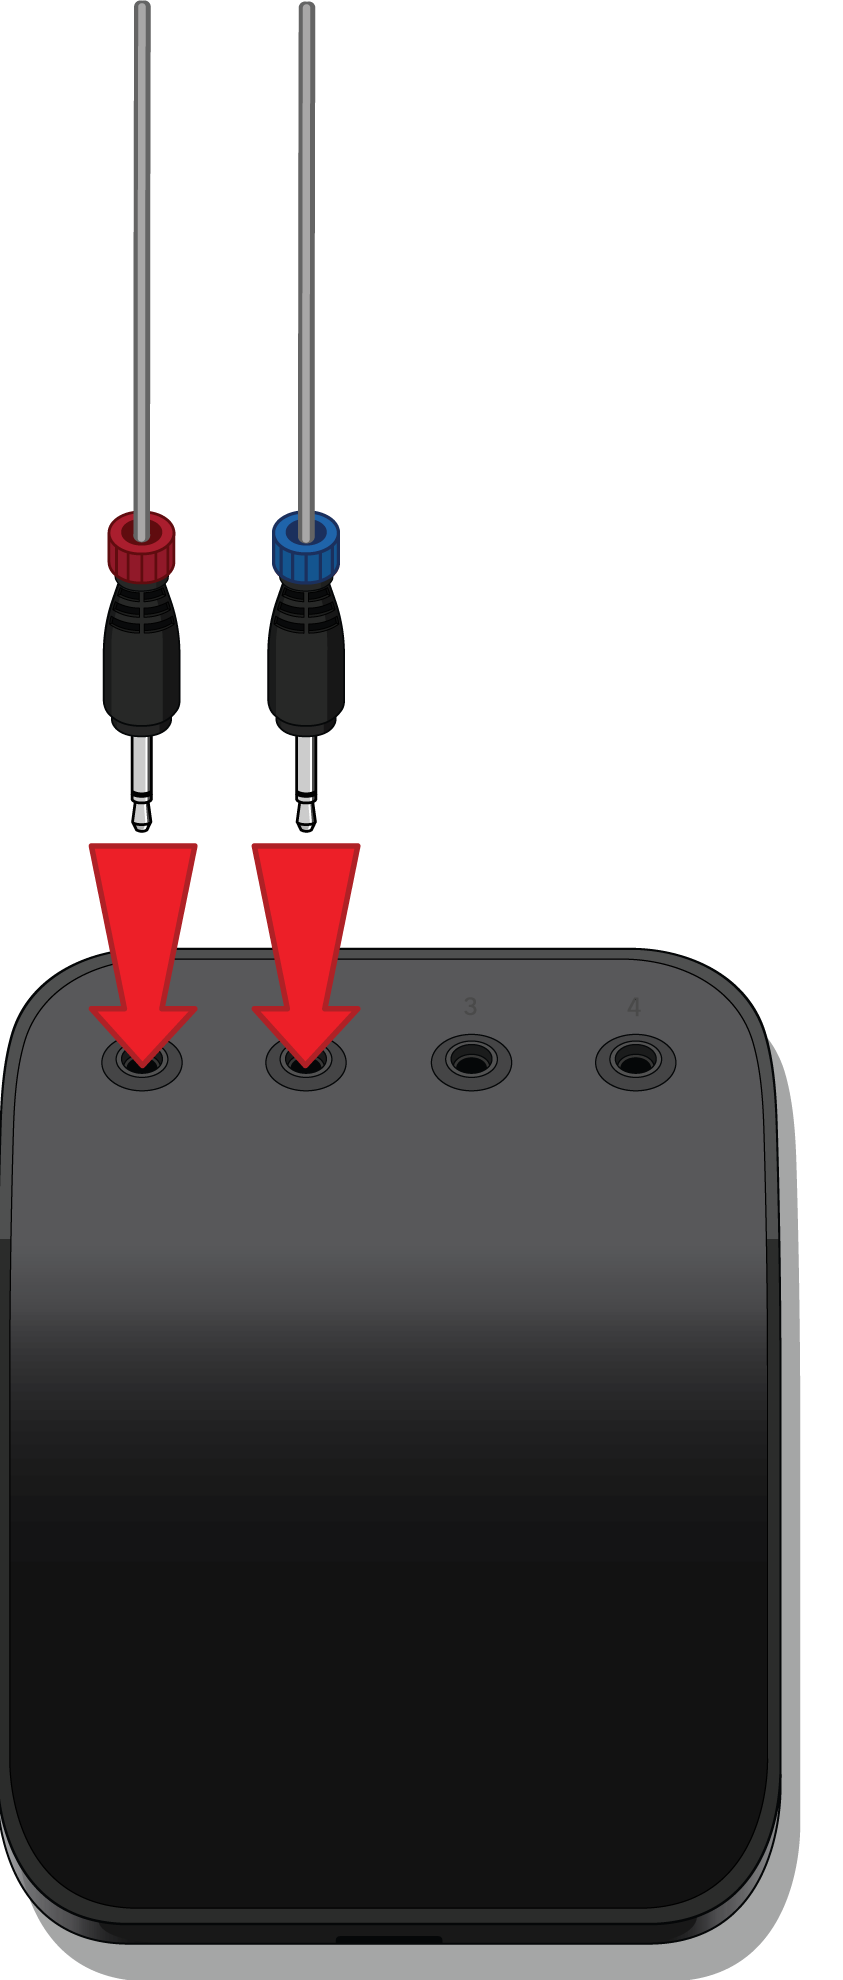 Plug-in.png#asset:1987074